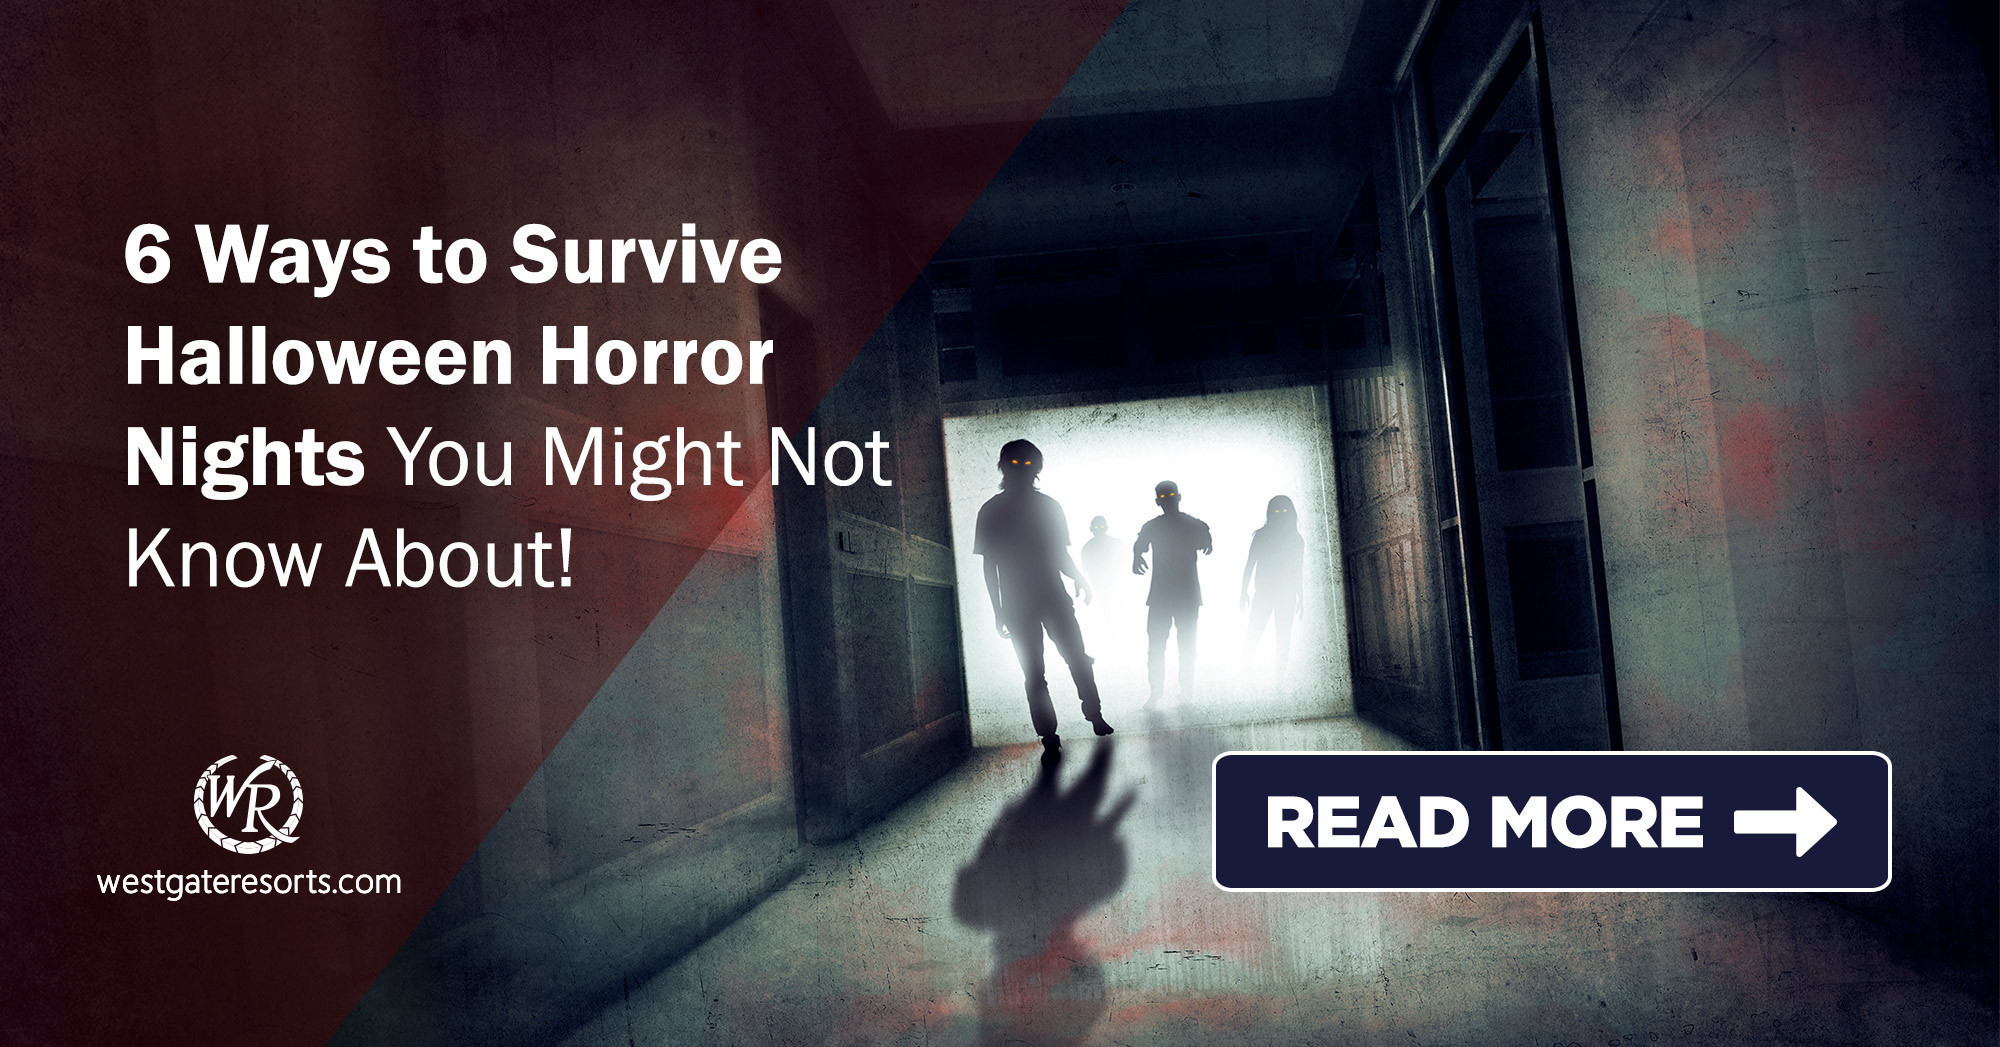 6 Ways to Survive Halloween Horror Nights You Might Not Know About! | HHN 2019